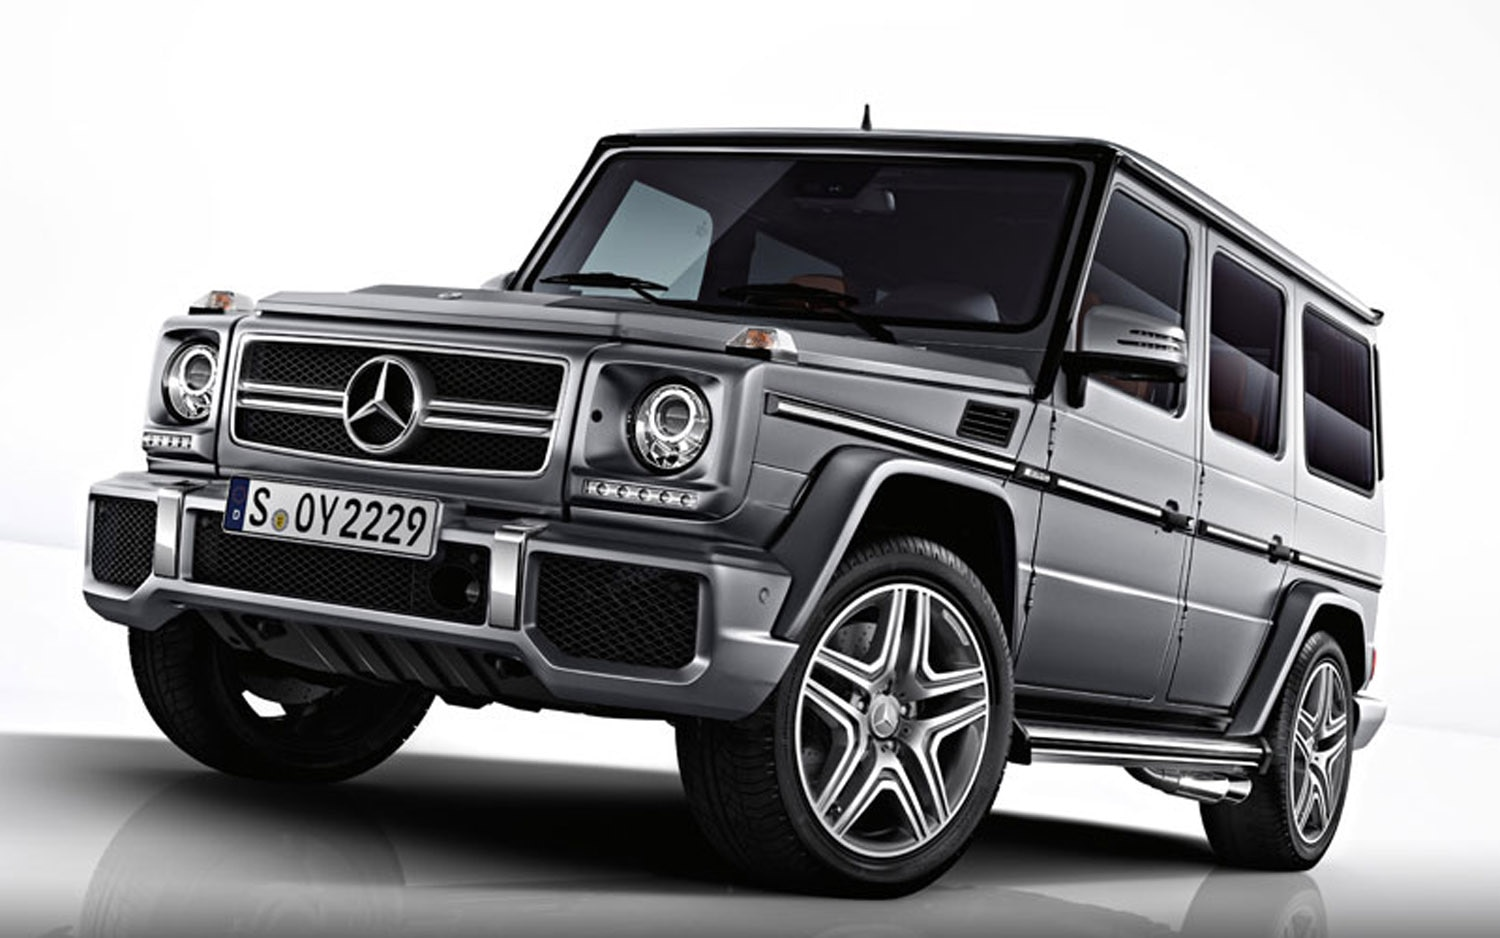 2013 Mercedes Benz G63 AMG Front Three Quarter